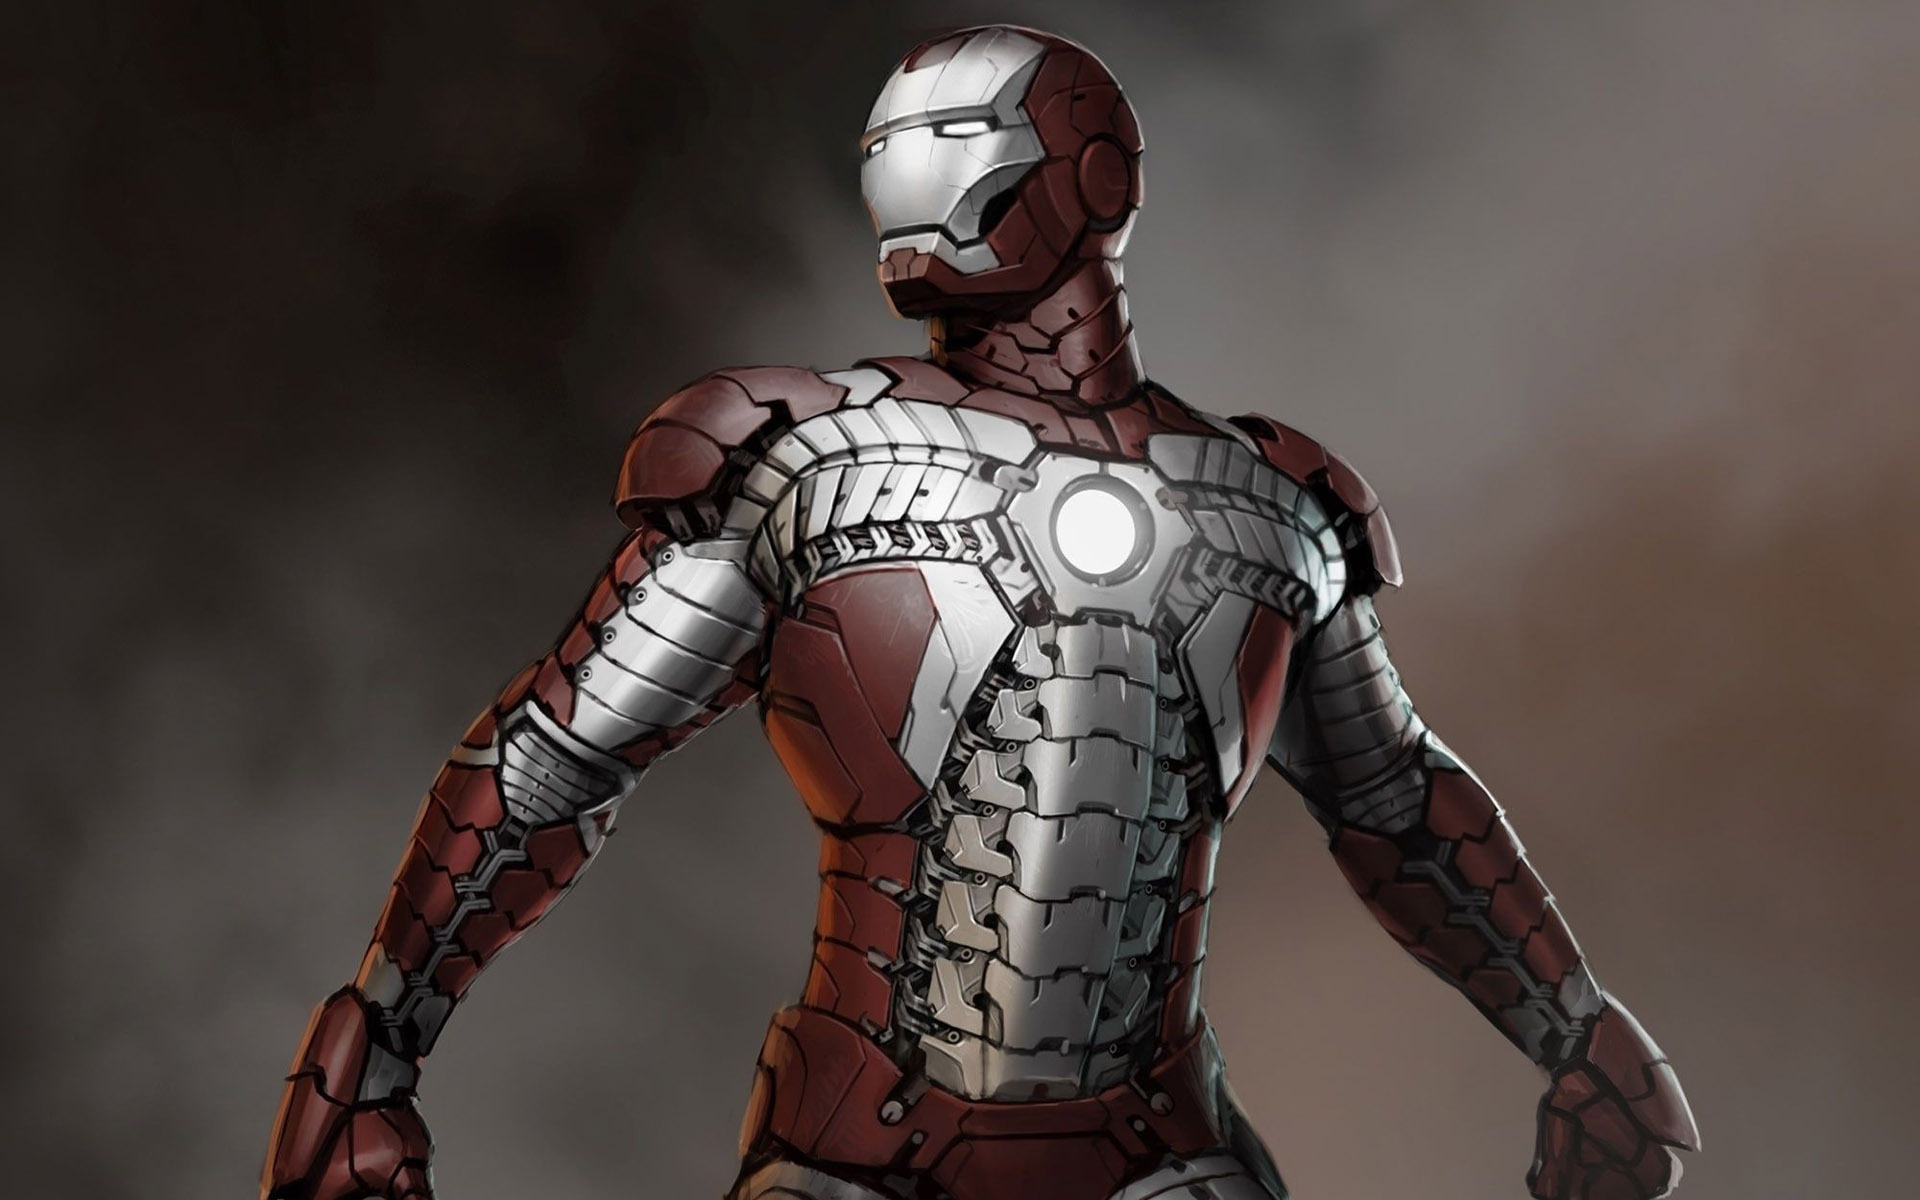 Iron Man Hd Wallpapers For Desktop Download